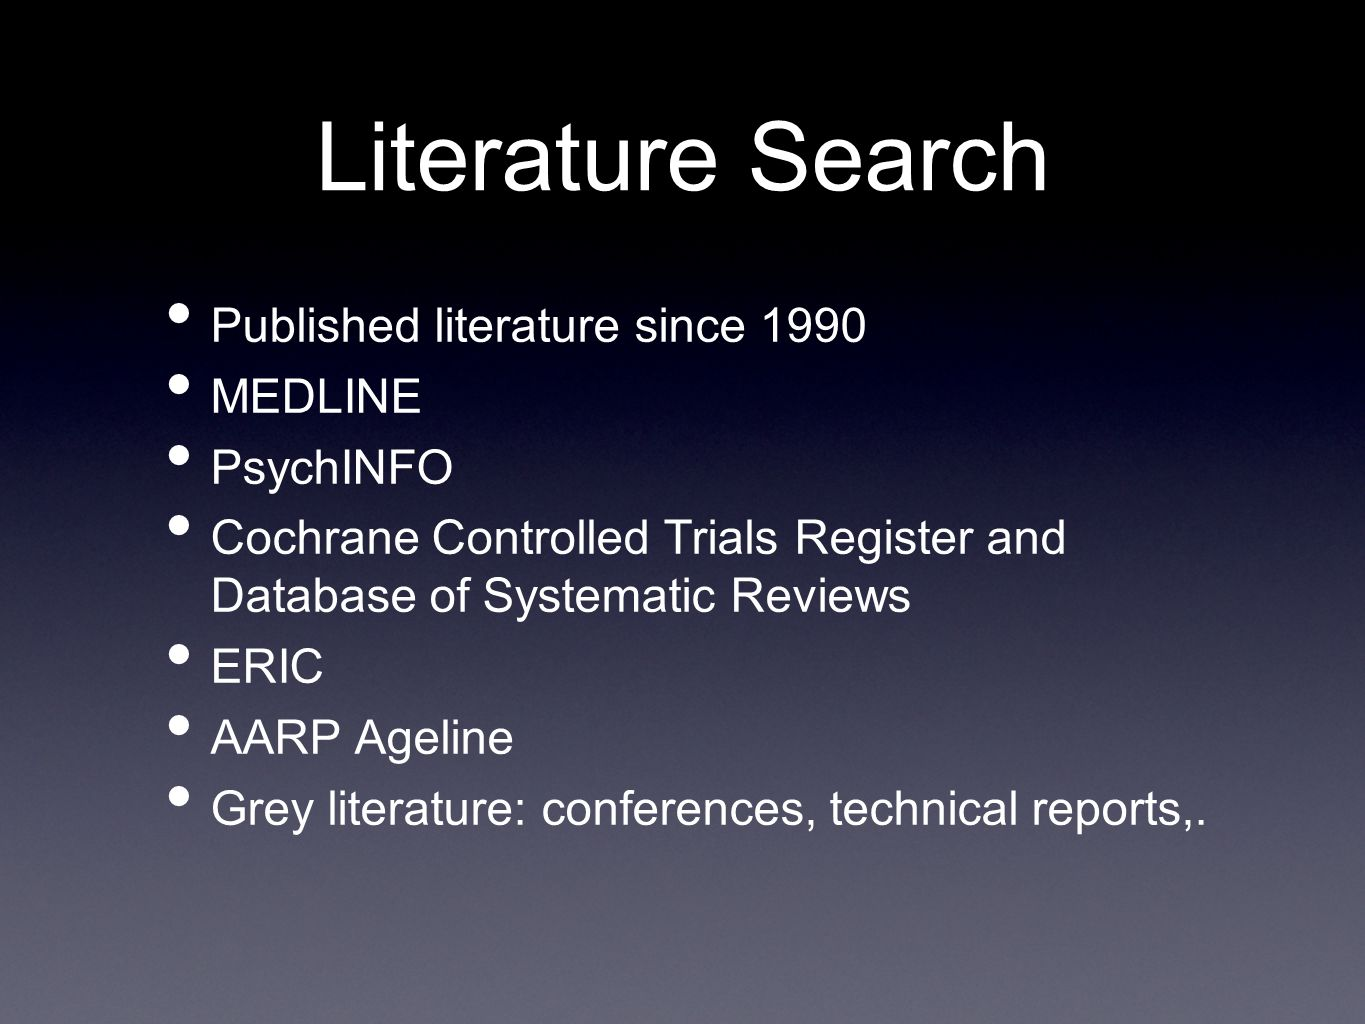 Published literature since 1990 MEDLINE PsychINFO Cochrane Controlled Trials Register and Database of Systematic Reviews ERIC AARP Ageline Grey literature: conferences, technical reports,.